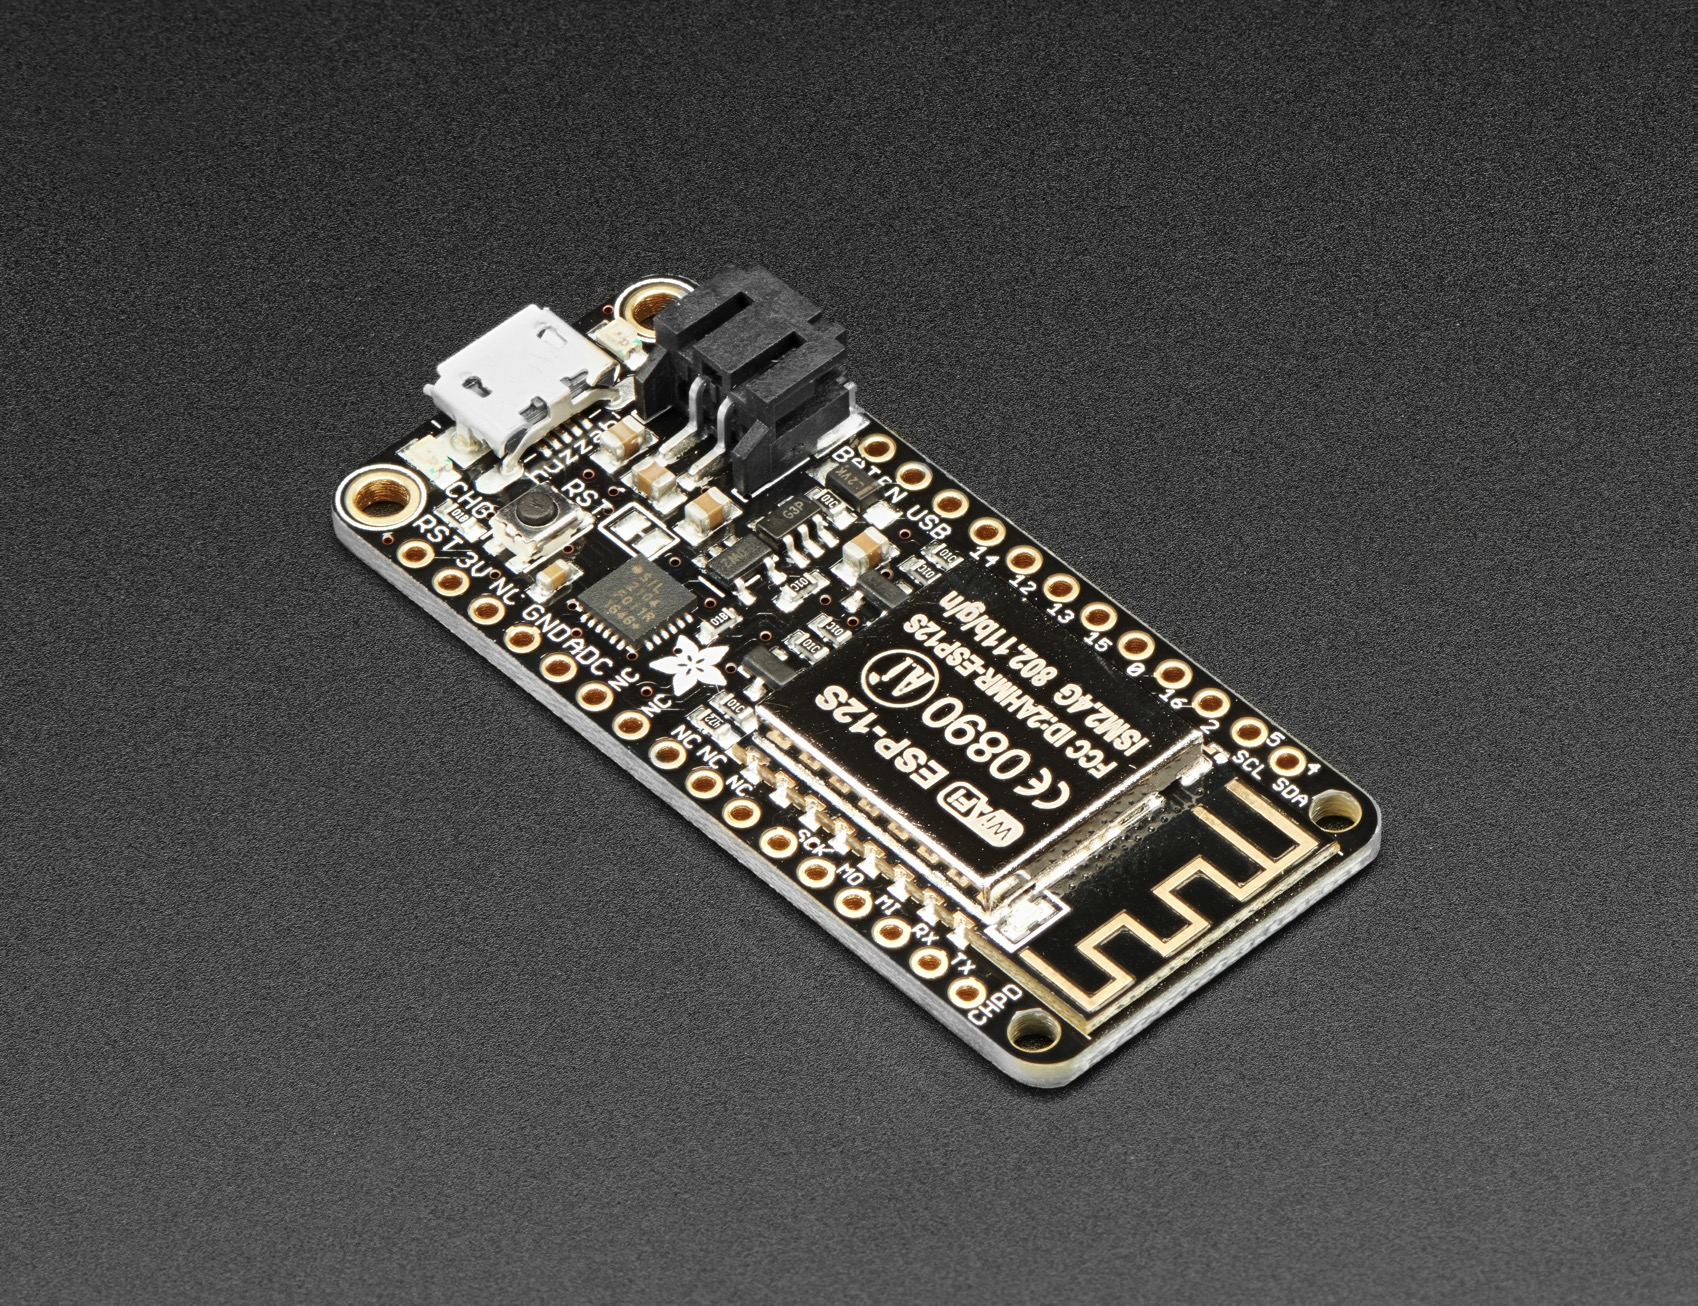 Adafruit Feather Huzzah With Esp8266 Loose Headers Id 2821 More Printed Circuit Boards We Buy Pictures Or Back To General E 1695 Industries Unique Fun Diy Electronics And Kits